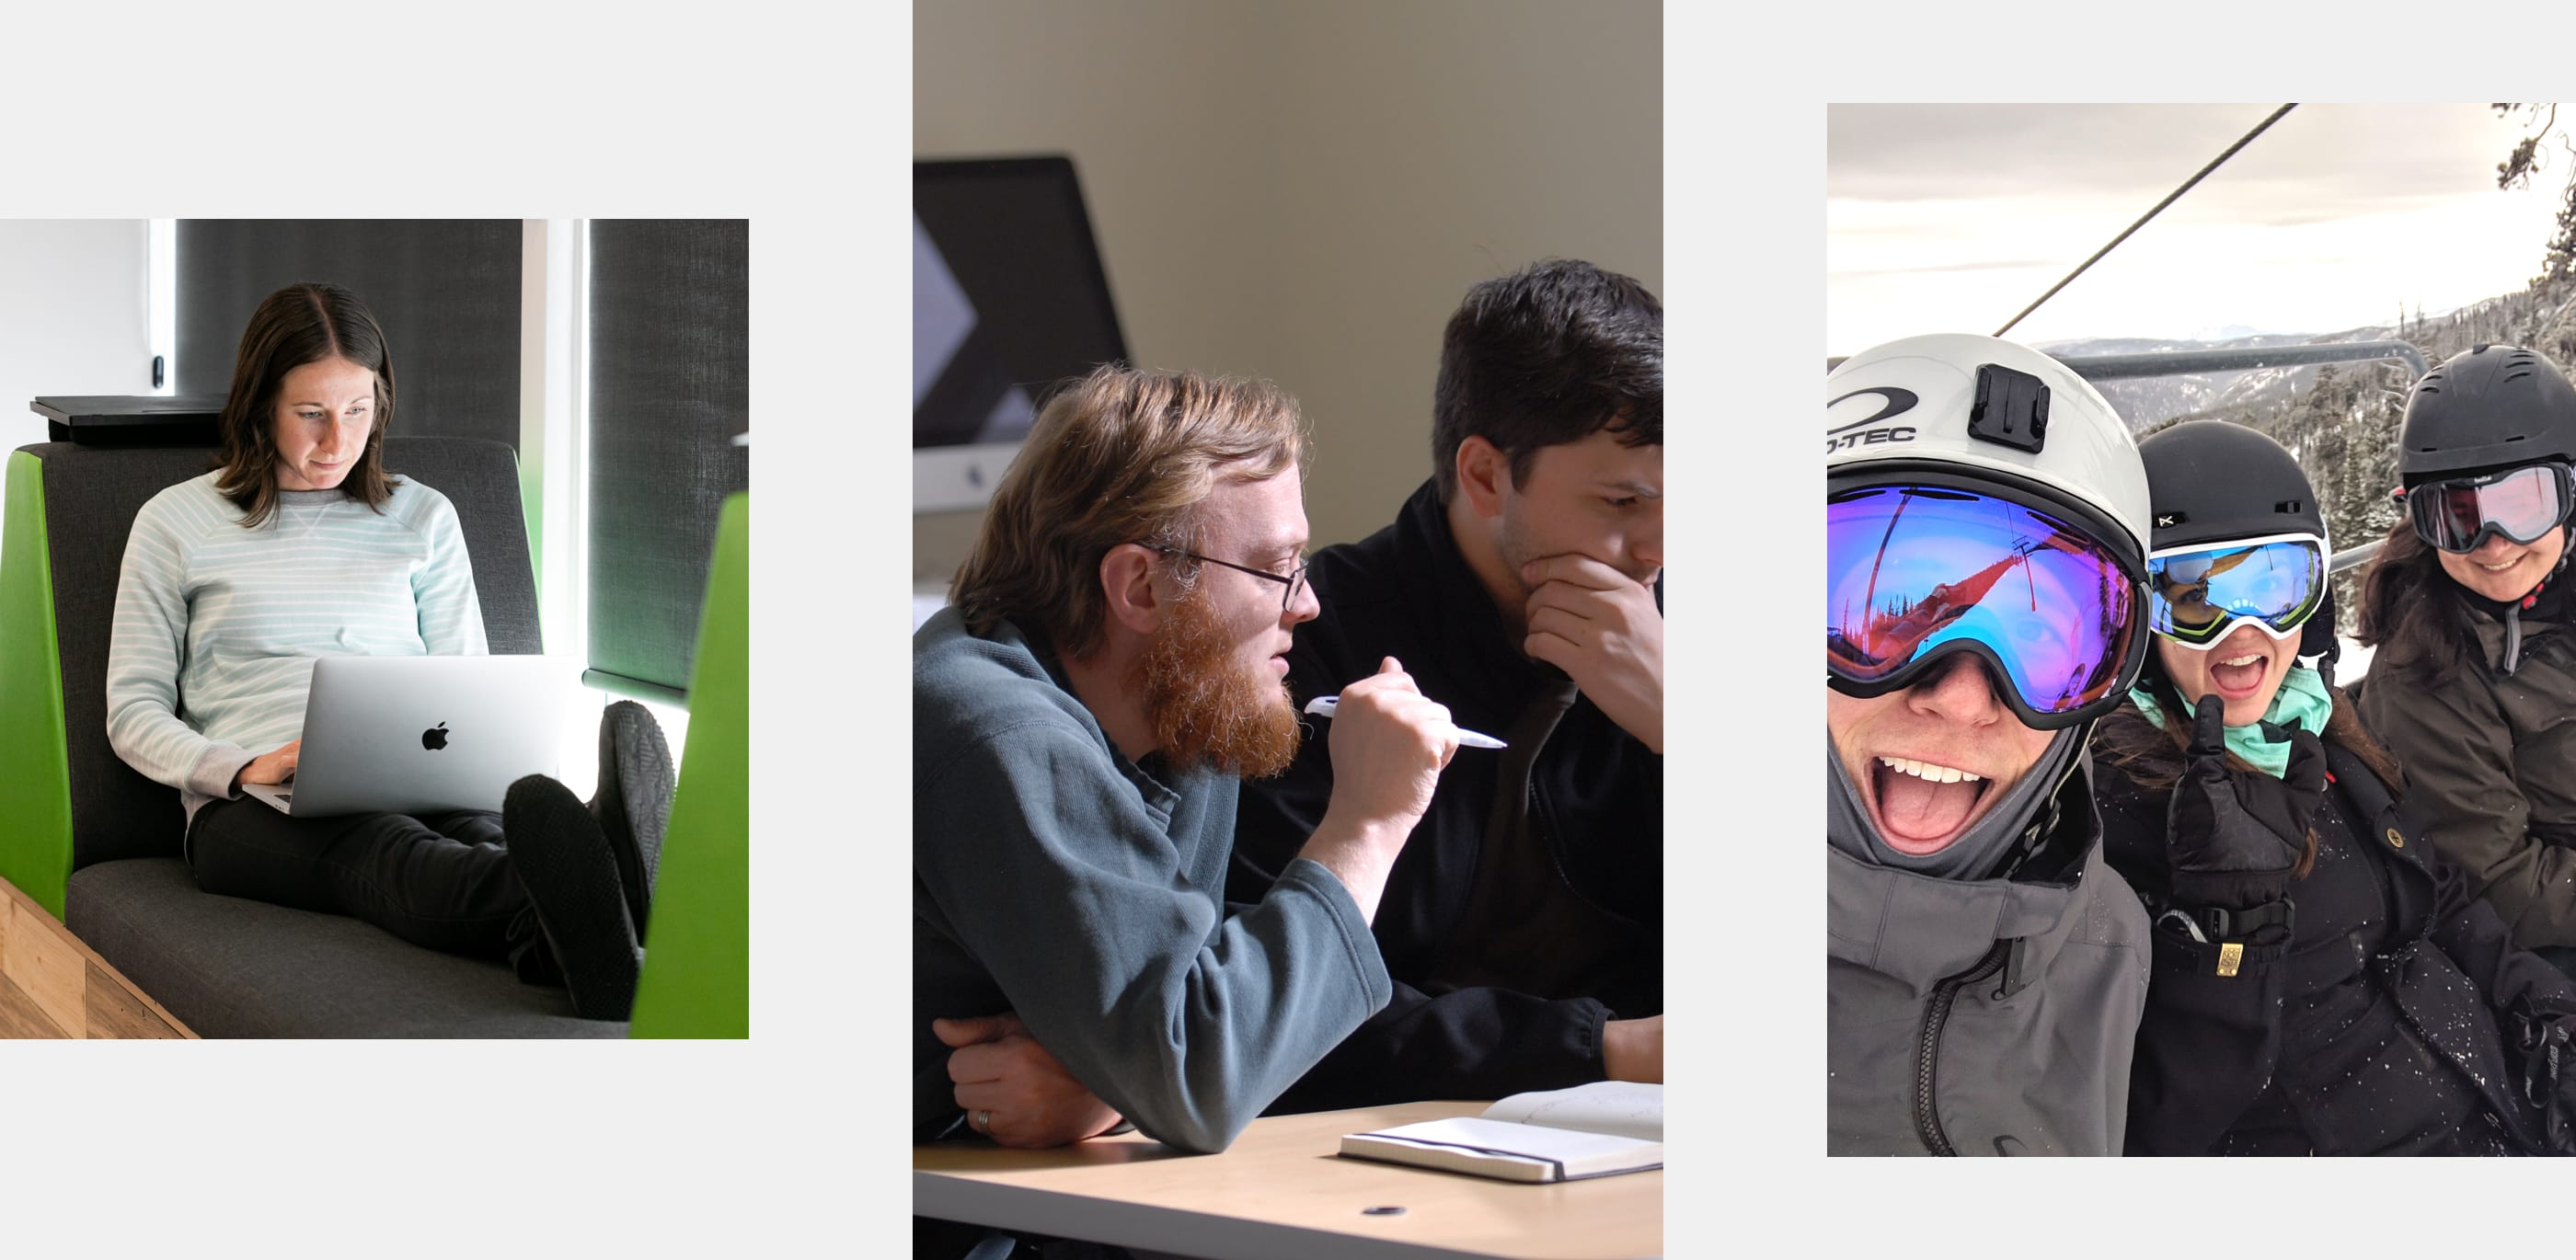 three equidistant photos of MojoTech staff. The first is of Allison programming on a laptop. The second of Chris and Seth reviewing code. The thrid of of Mojos on a ski lift.